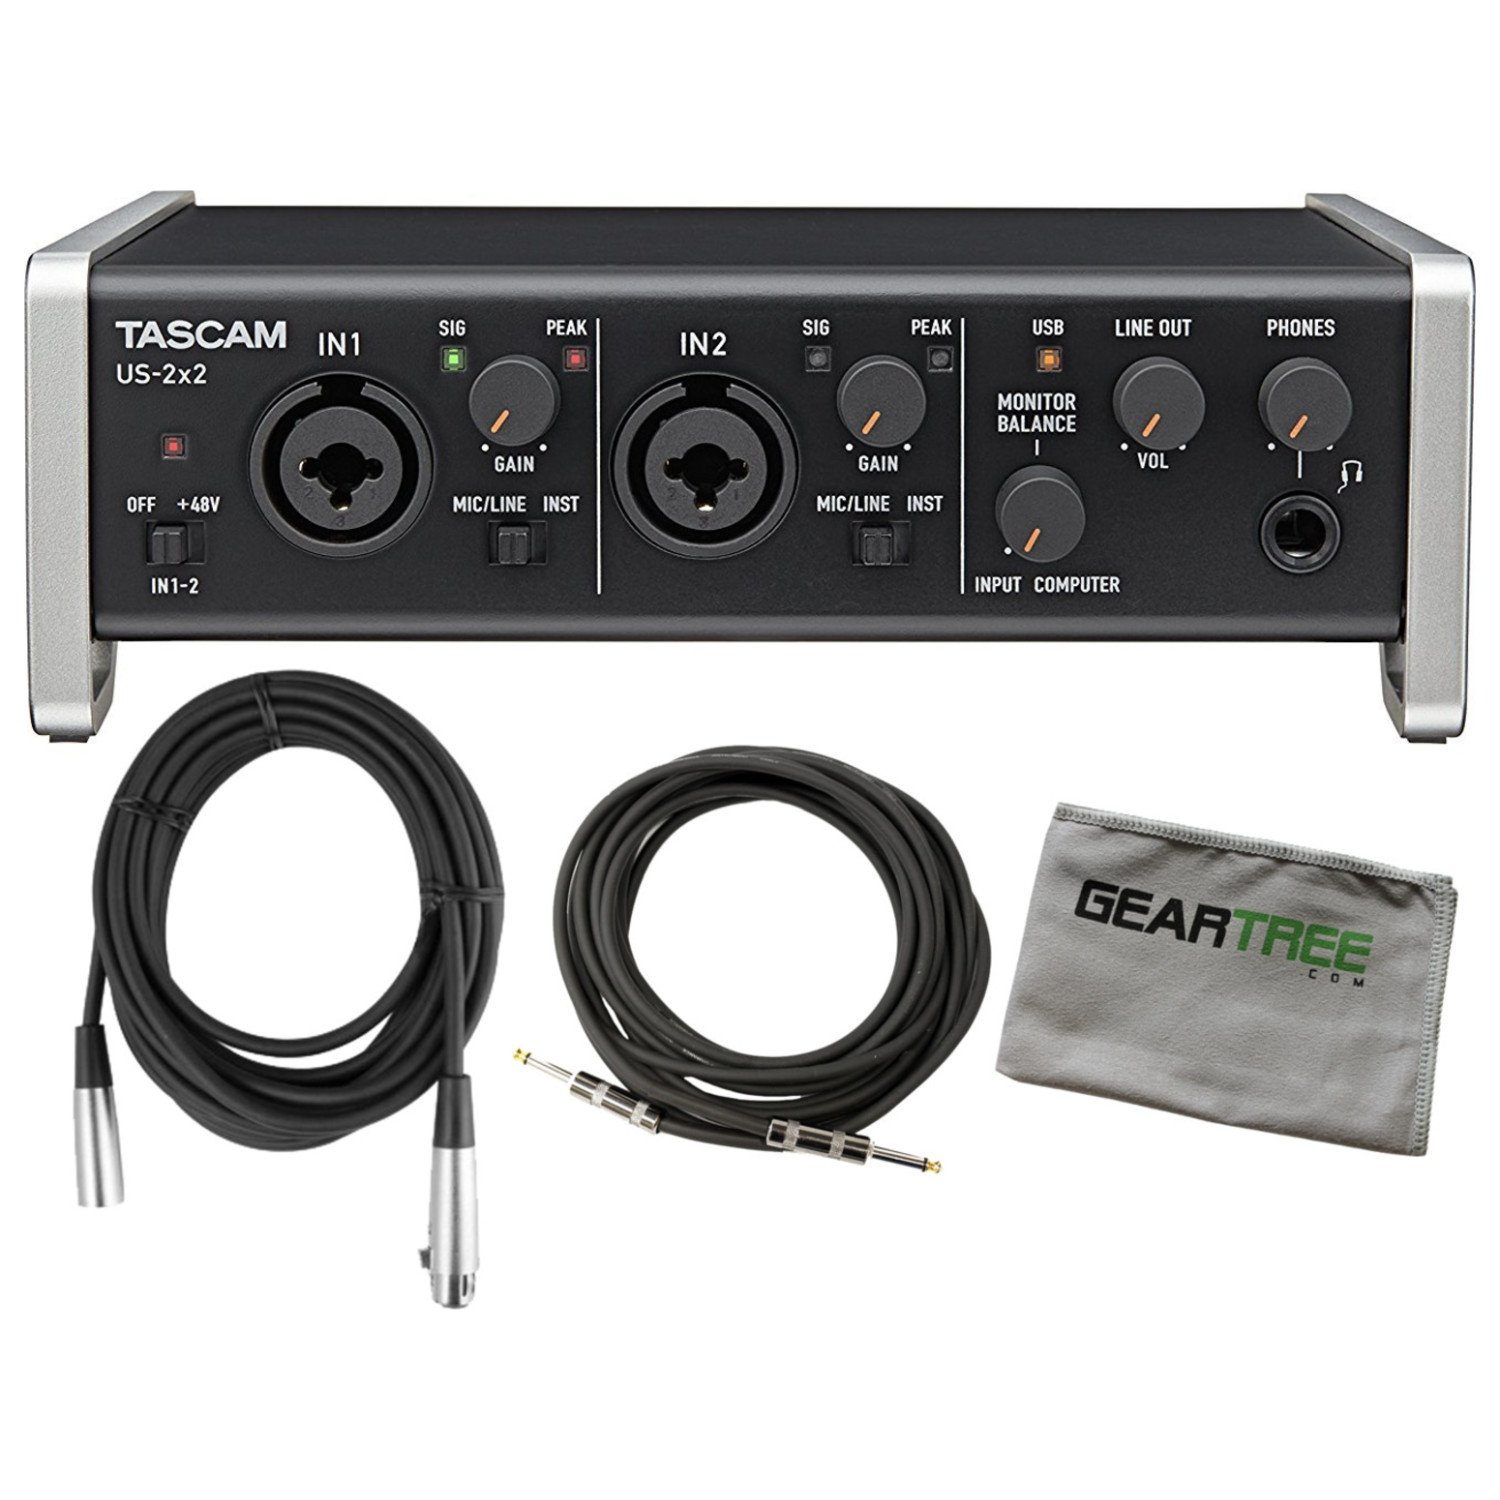 Tascam US 2x2 usb 2.0 2 IN 2 OUT Audio/MIDI Interface w/Cleaning Cloth and 2 Ca by Tascam (Image #1)